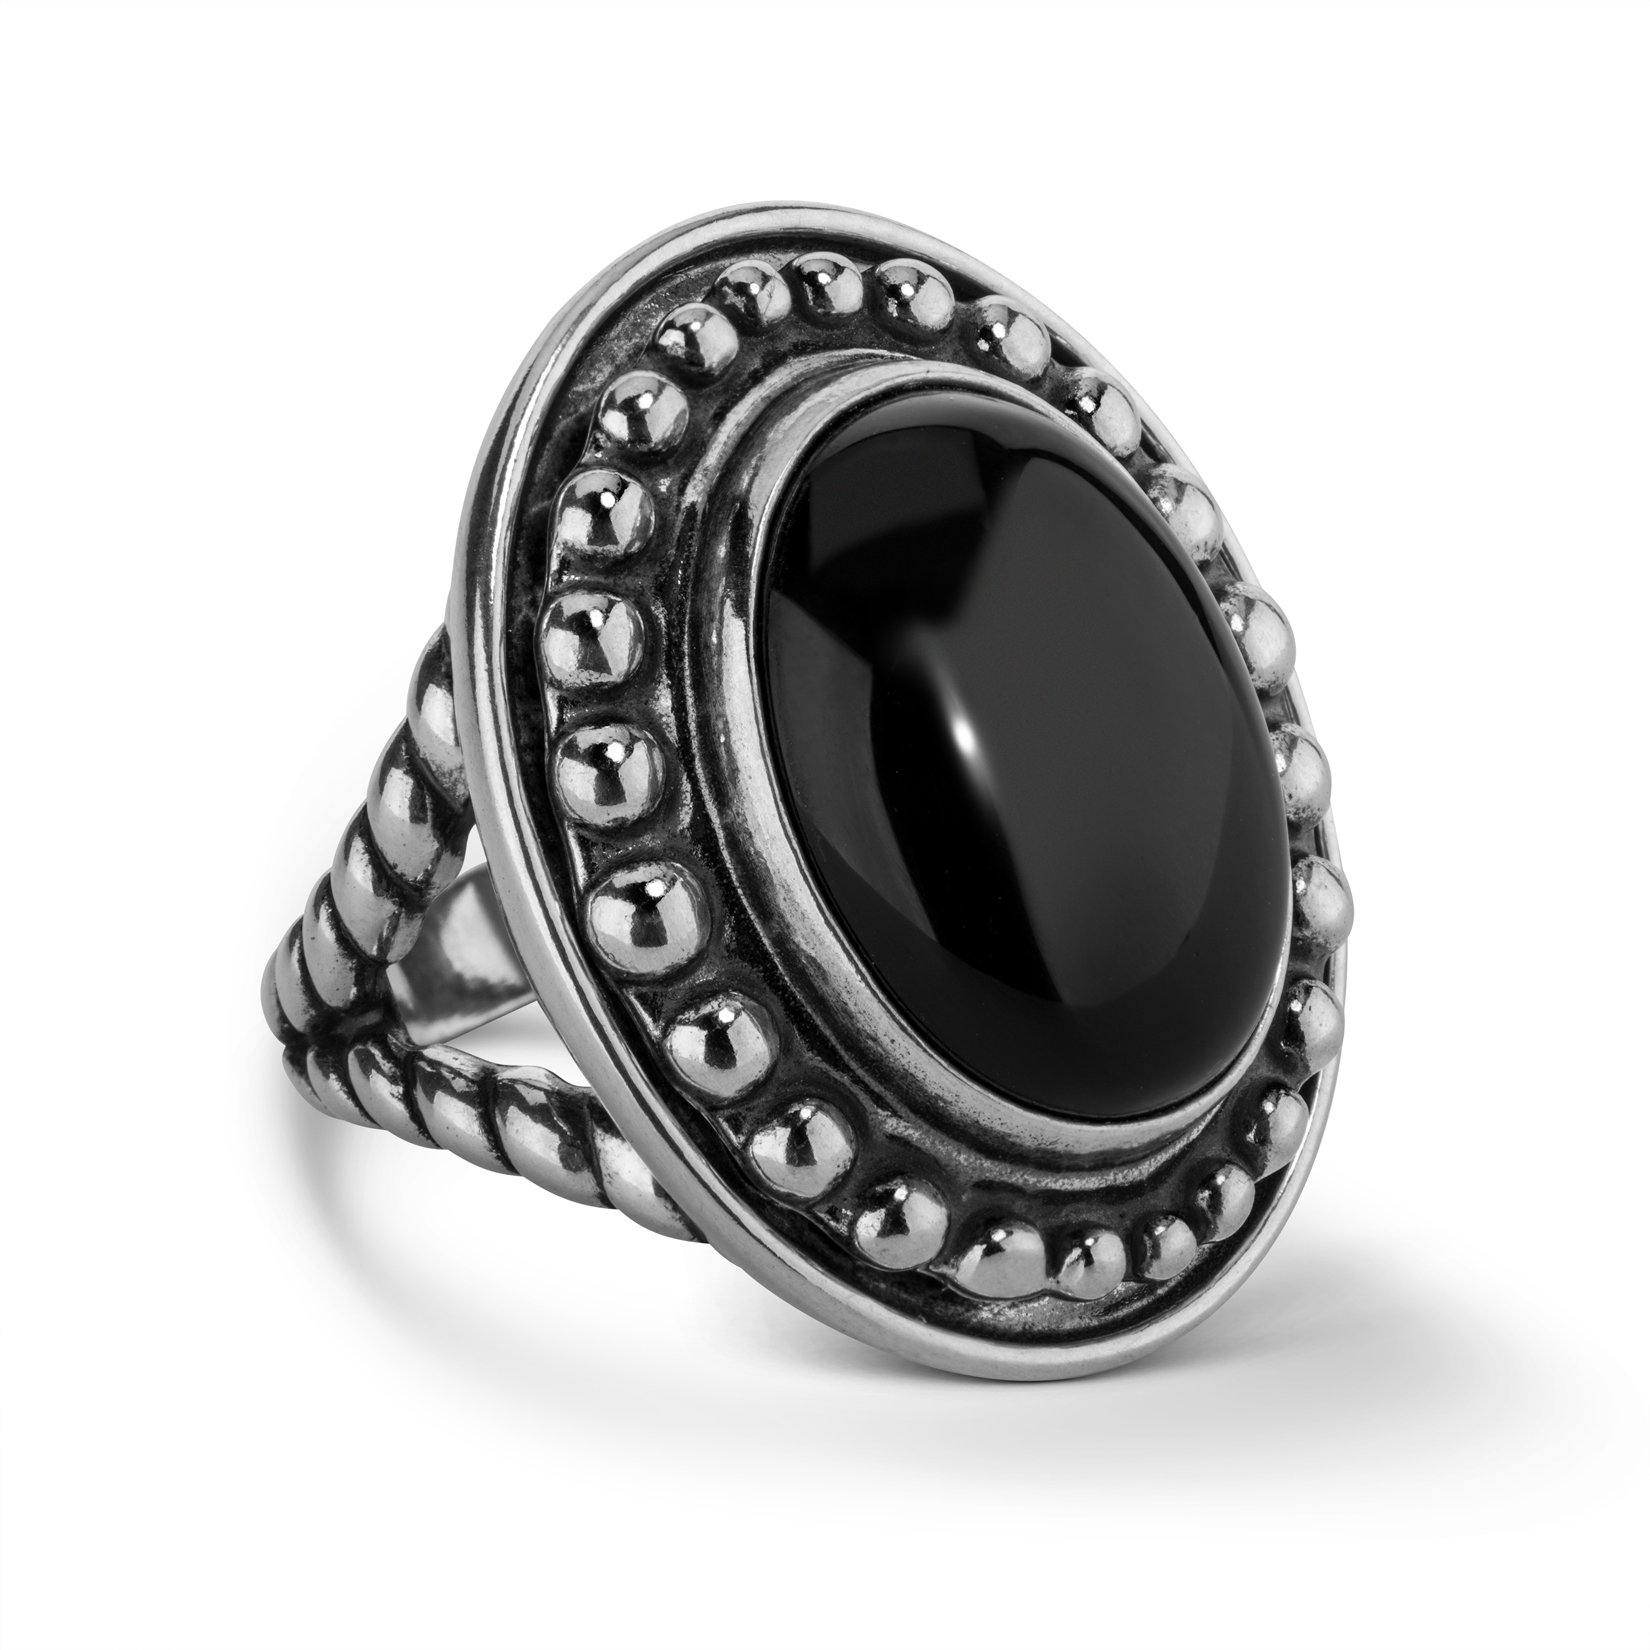 American West Sterling Silver Black Agate Gemstone Interchangeable Bold Ring Size 5 by American West